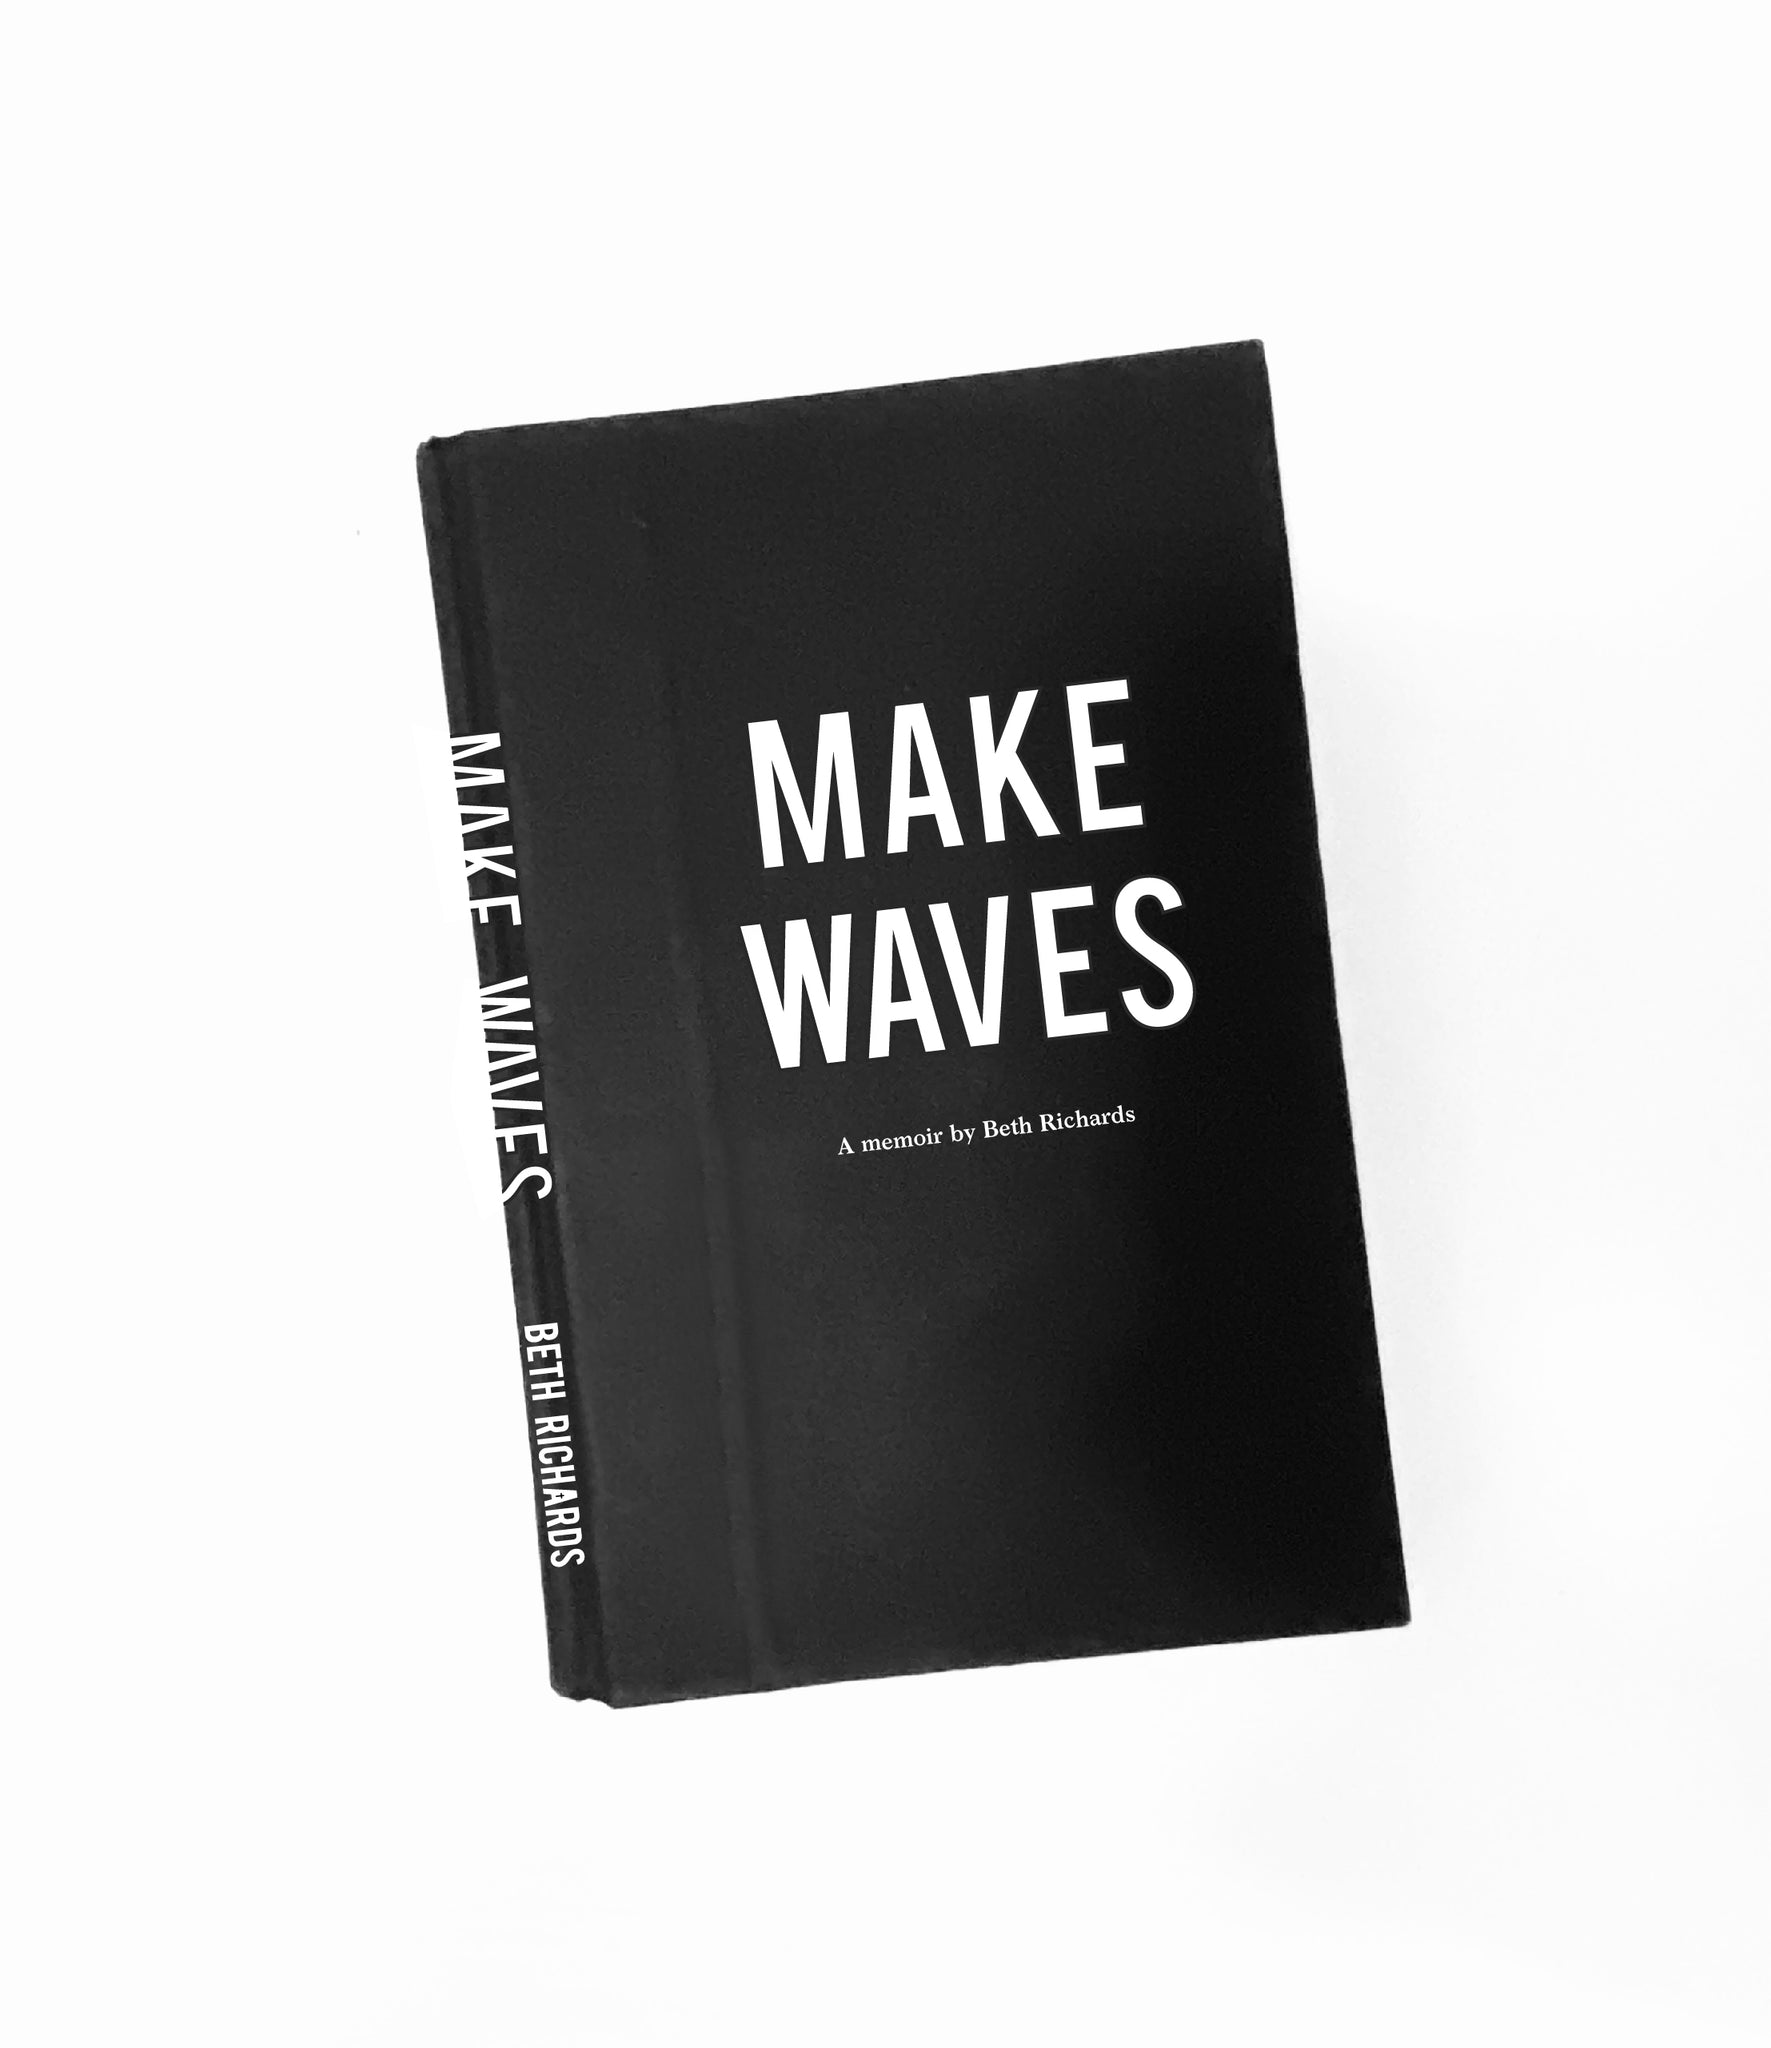 MAKE WAVES BOOK - PRE-ORDER